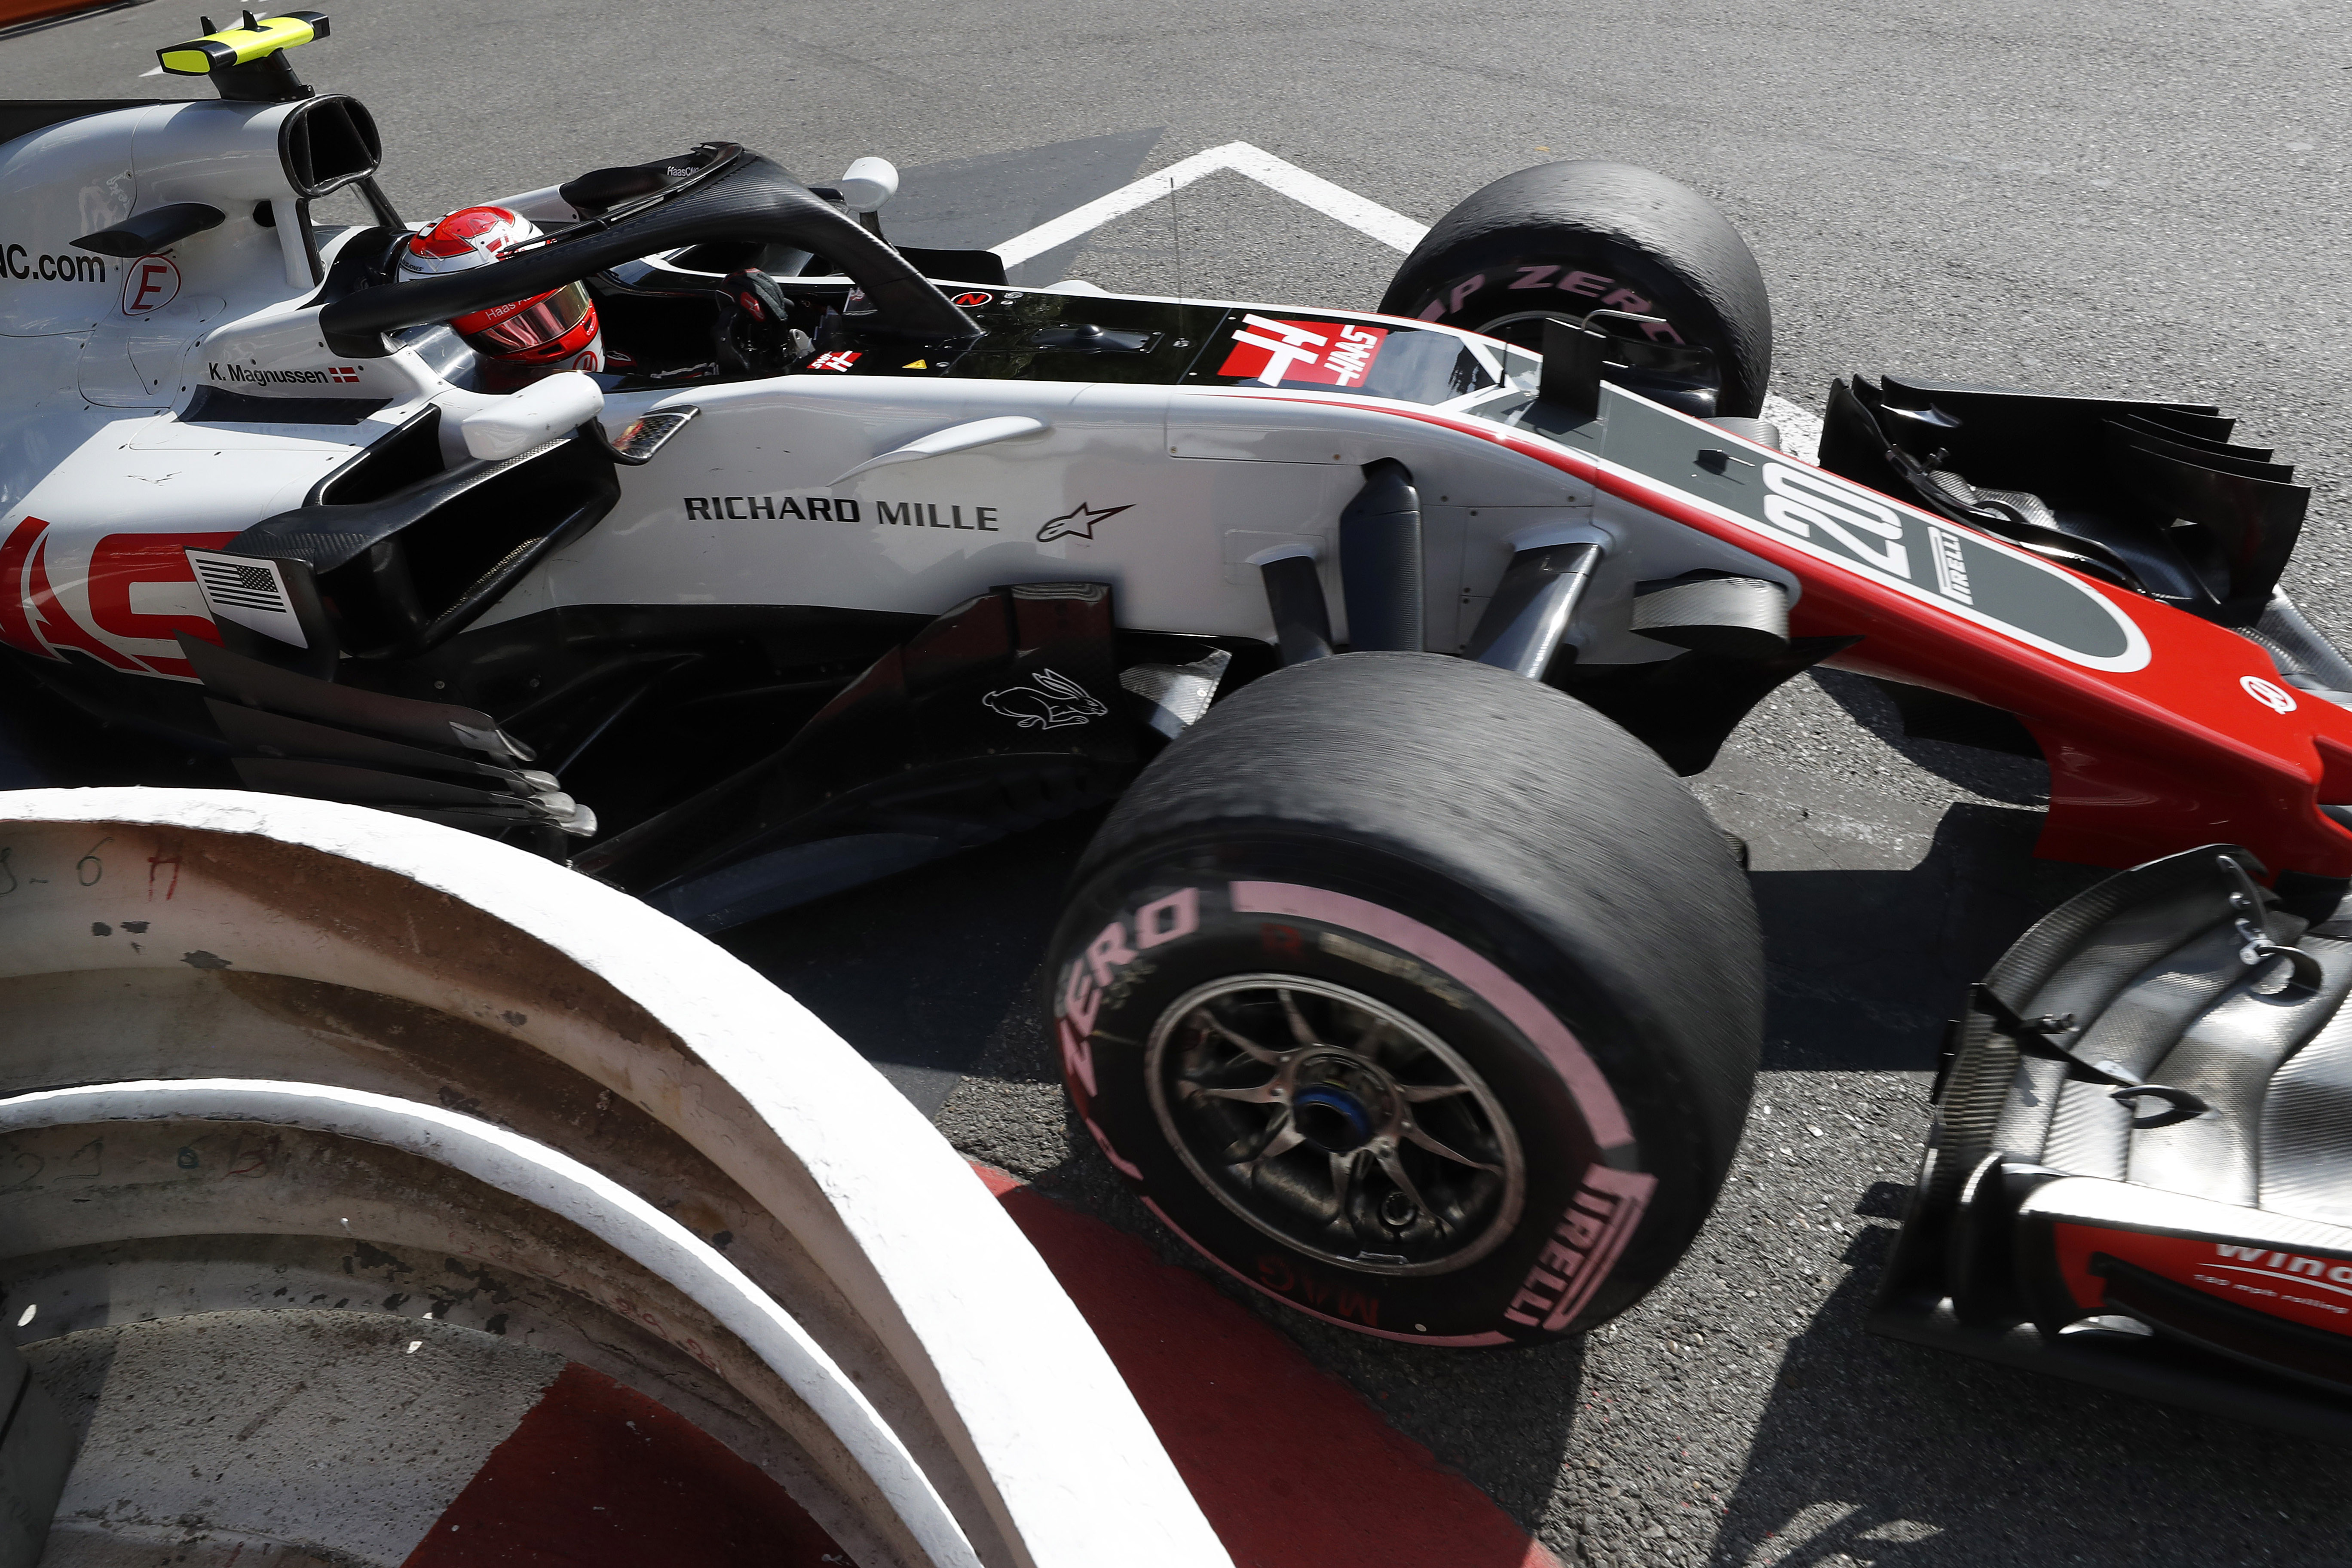 Magnussen's car in the pit